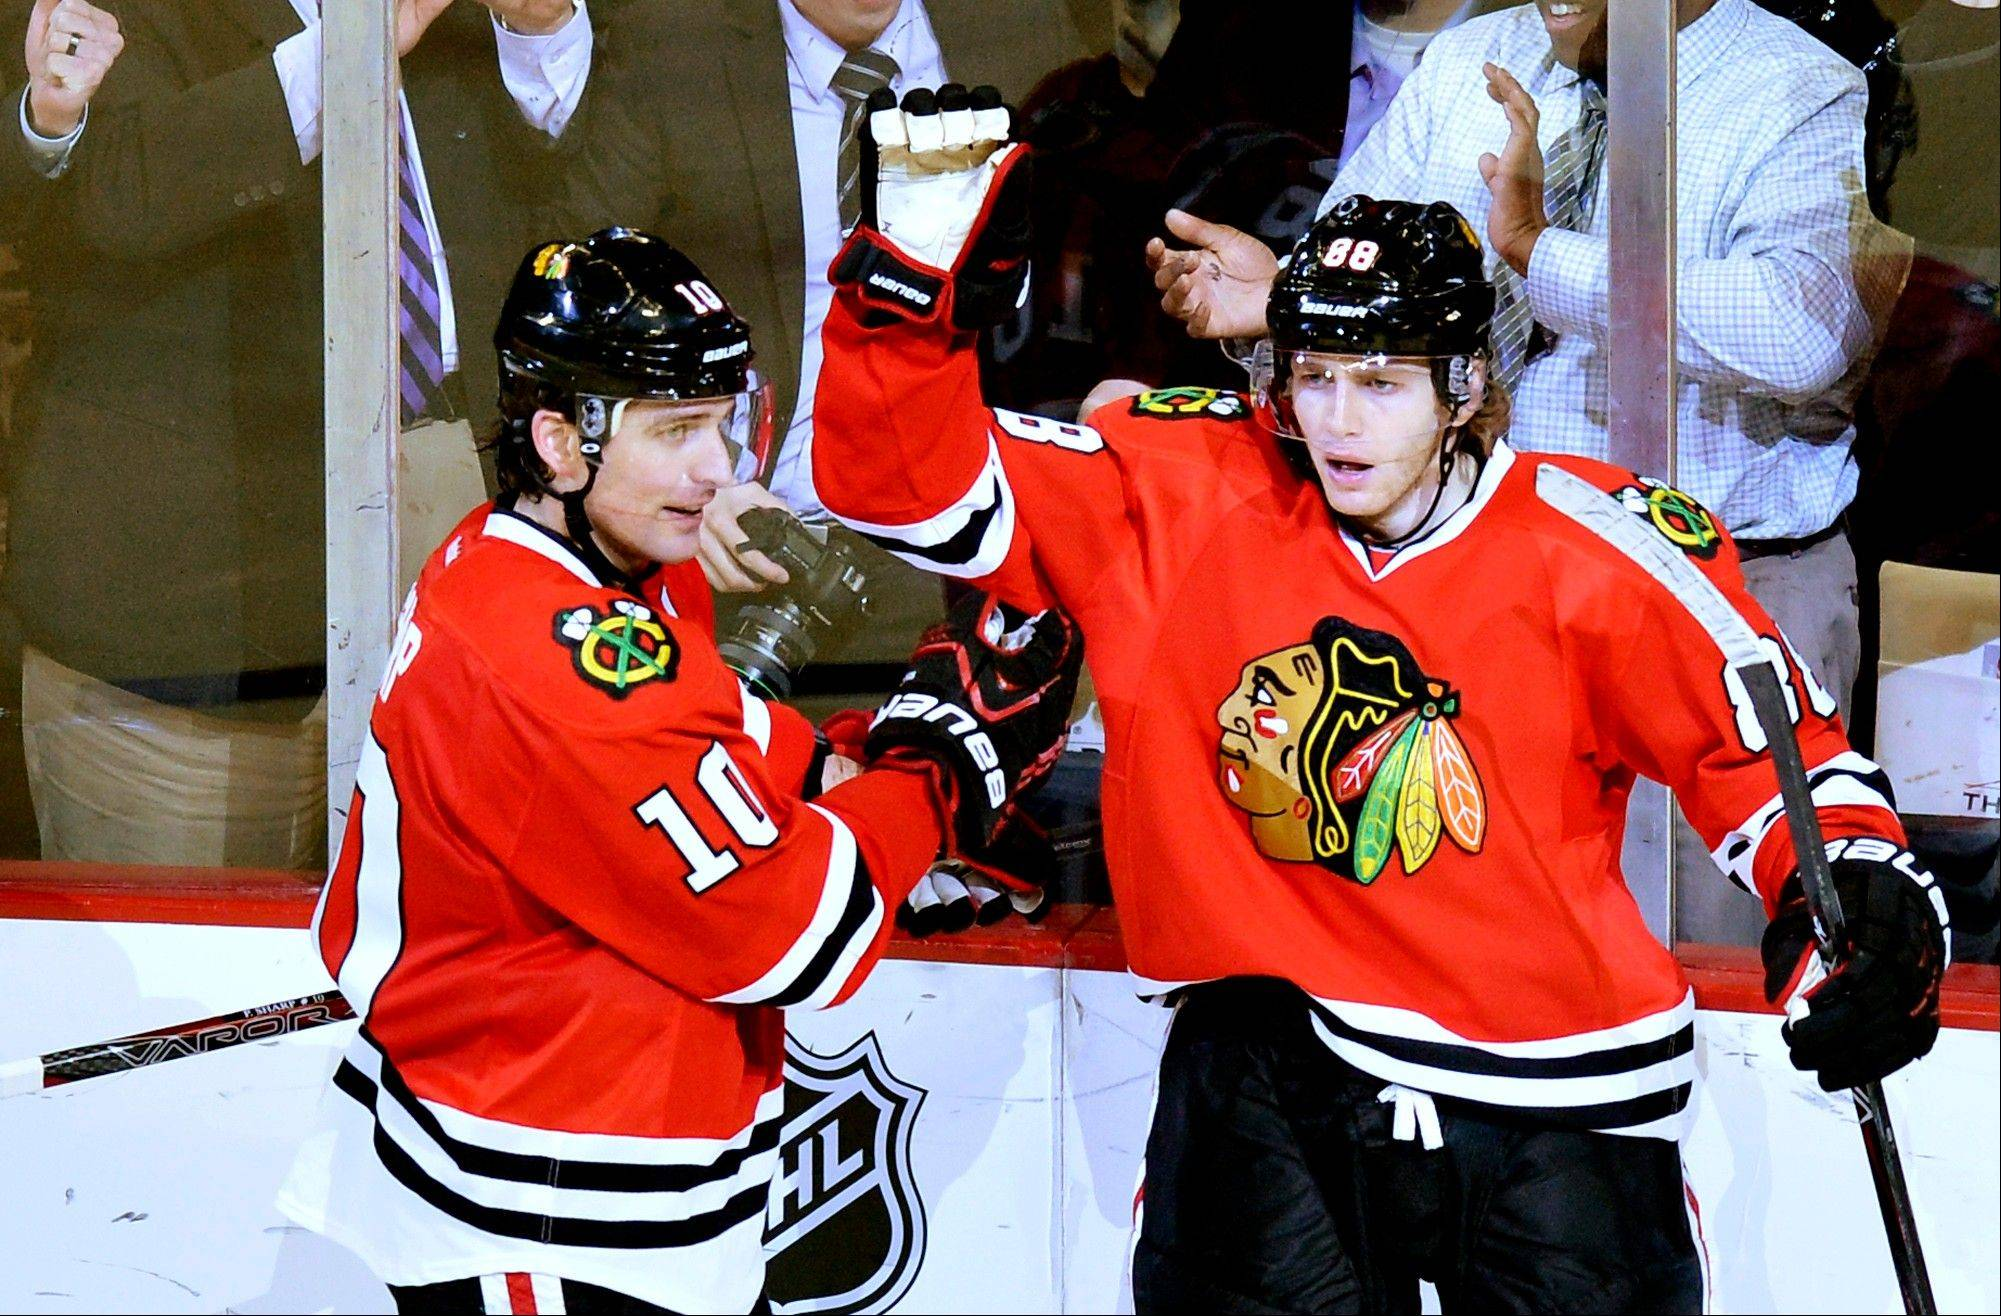 Patrick Sharp, left, and right wing Patrick Kane celebrate Kane's goal Tuesday against Minnesota. Sharp suffered a shoulder injury Wednesday and is out 3-4 weeks.